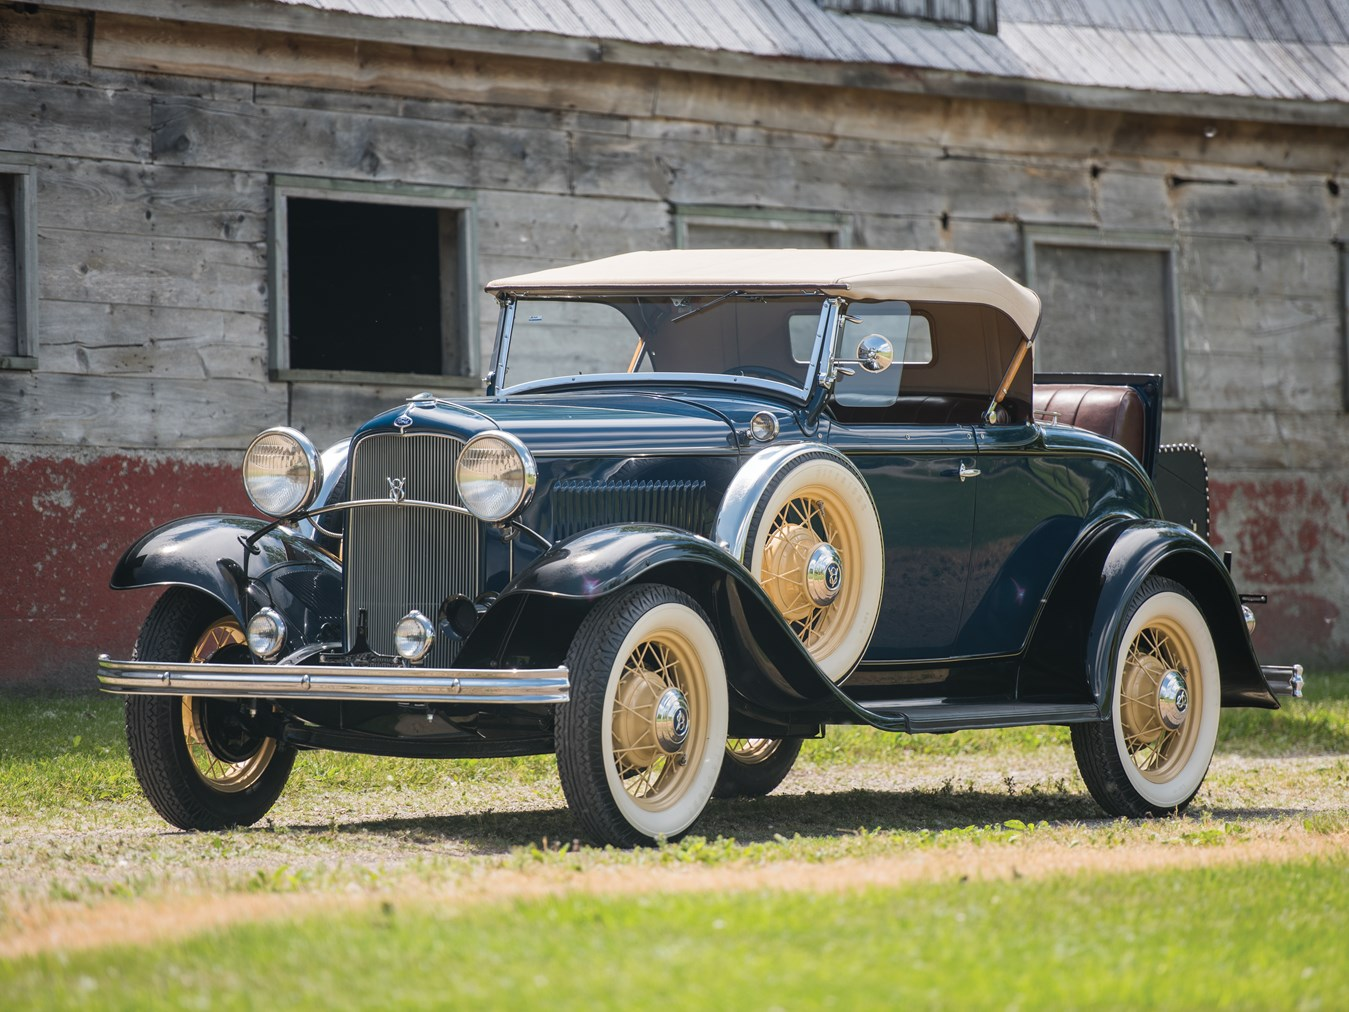 The 1932 Ford was available with an improved four cylinder engine from the Model A developing 50hp and the new V8 developing 65hp. Most chose the new and untried engine.